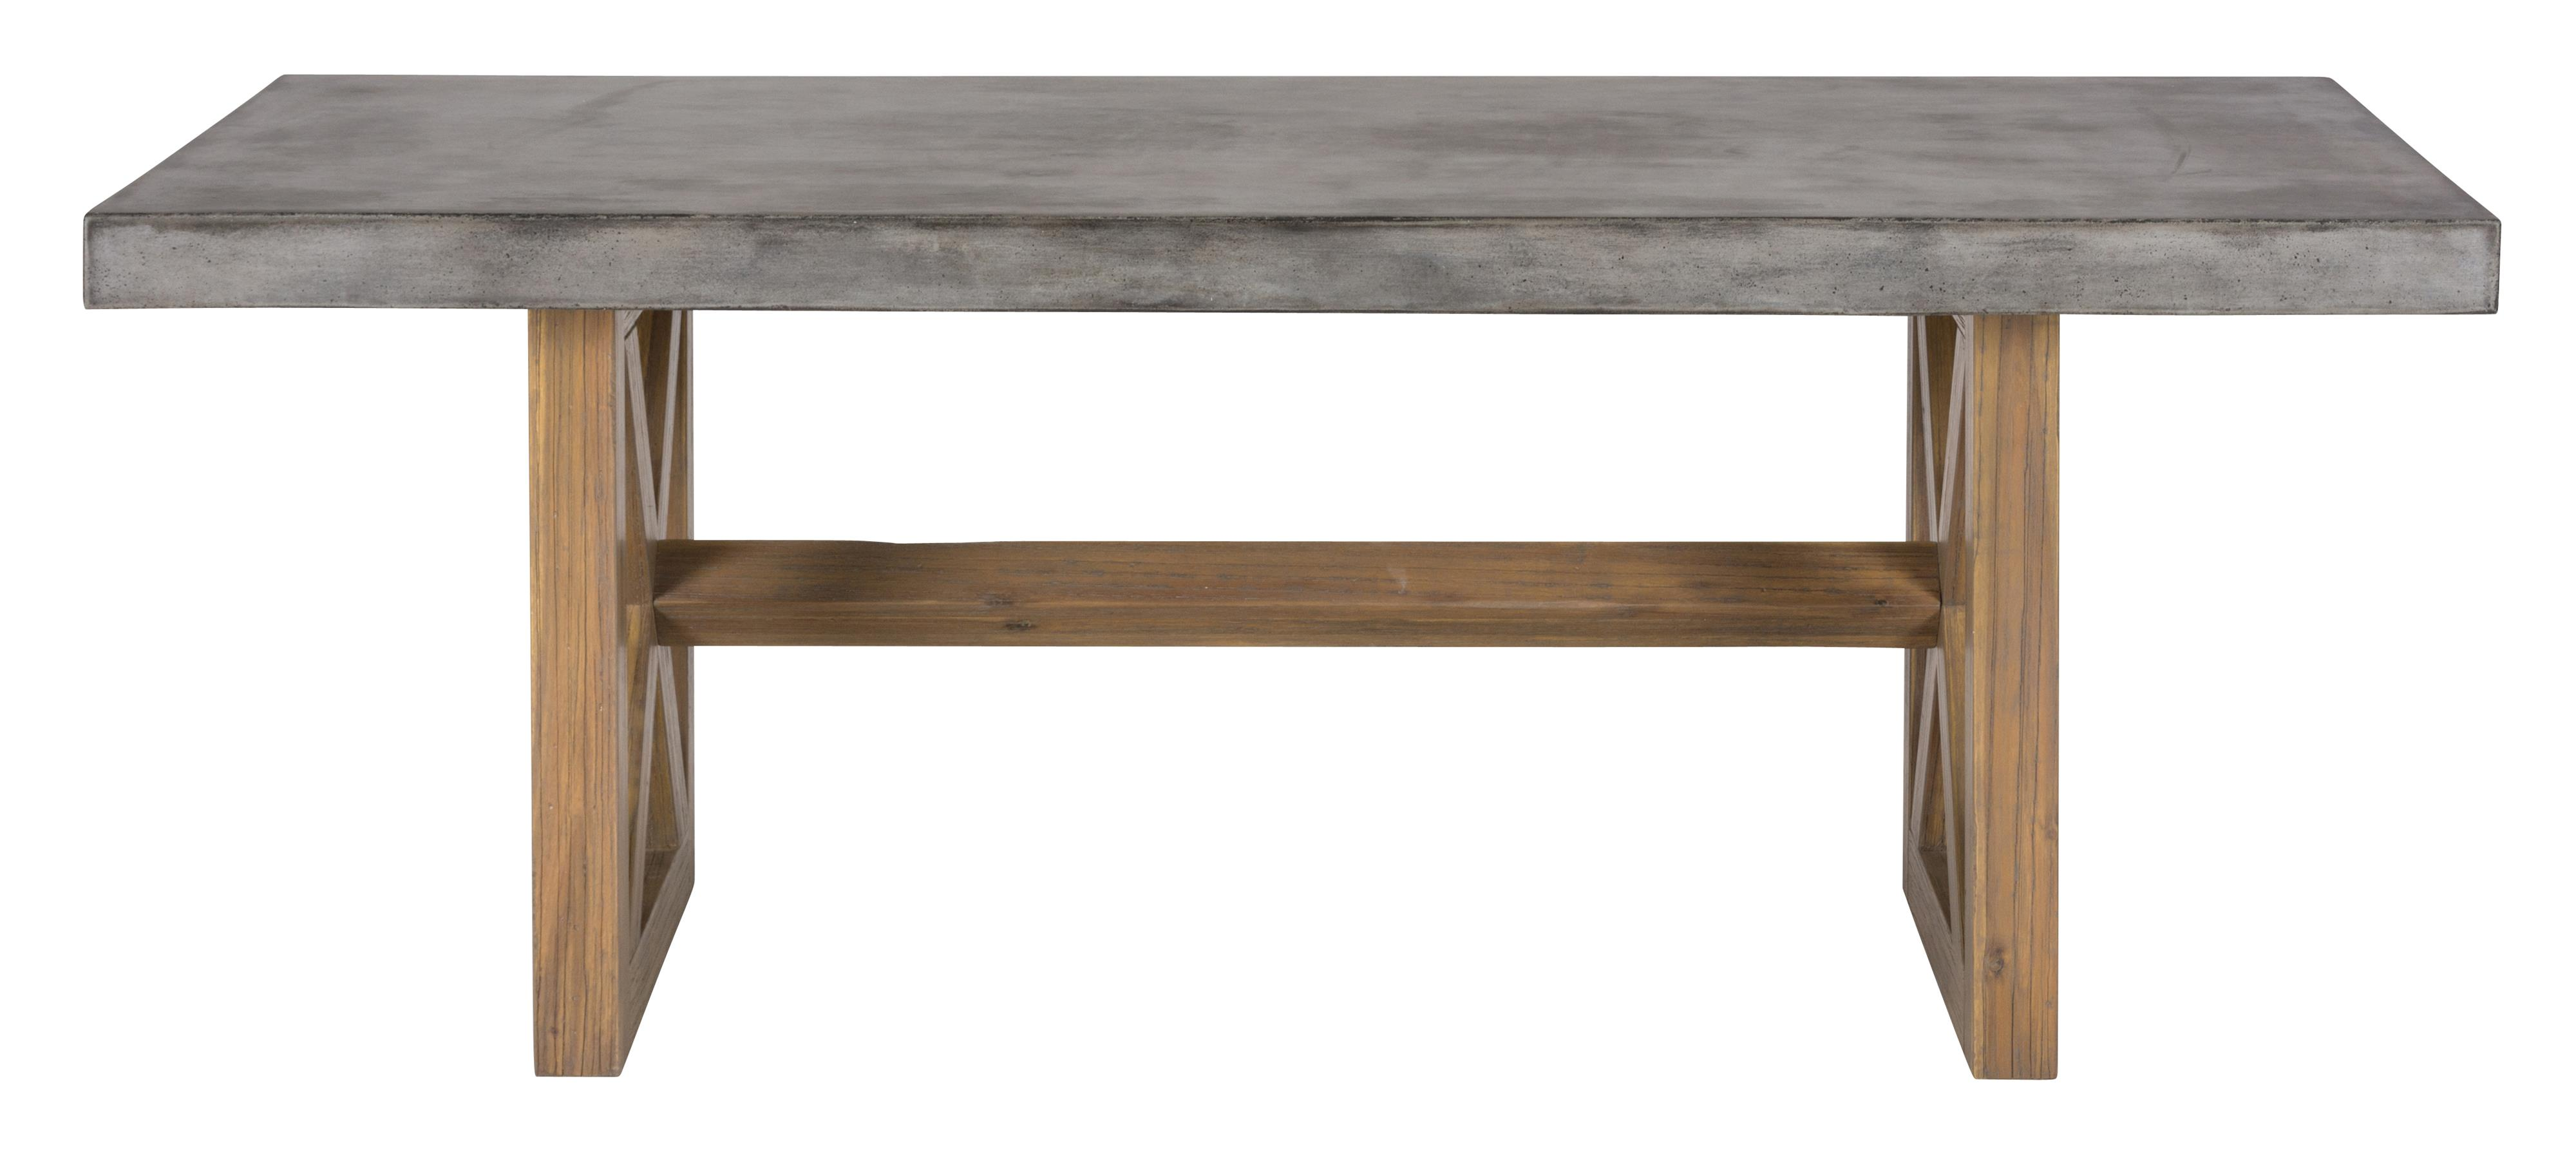 Belfort Essentials Boulder Ridge Concrete Dining Table- Rectangle - Item Number: 757-78T+B